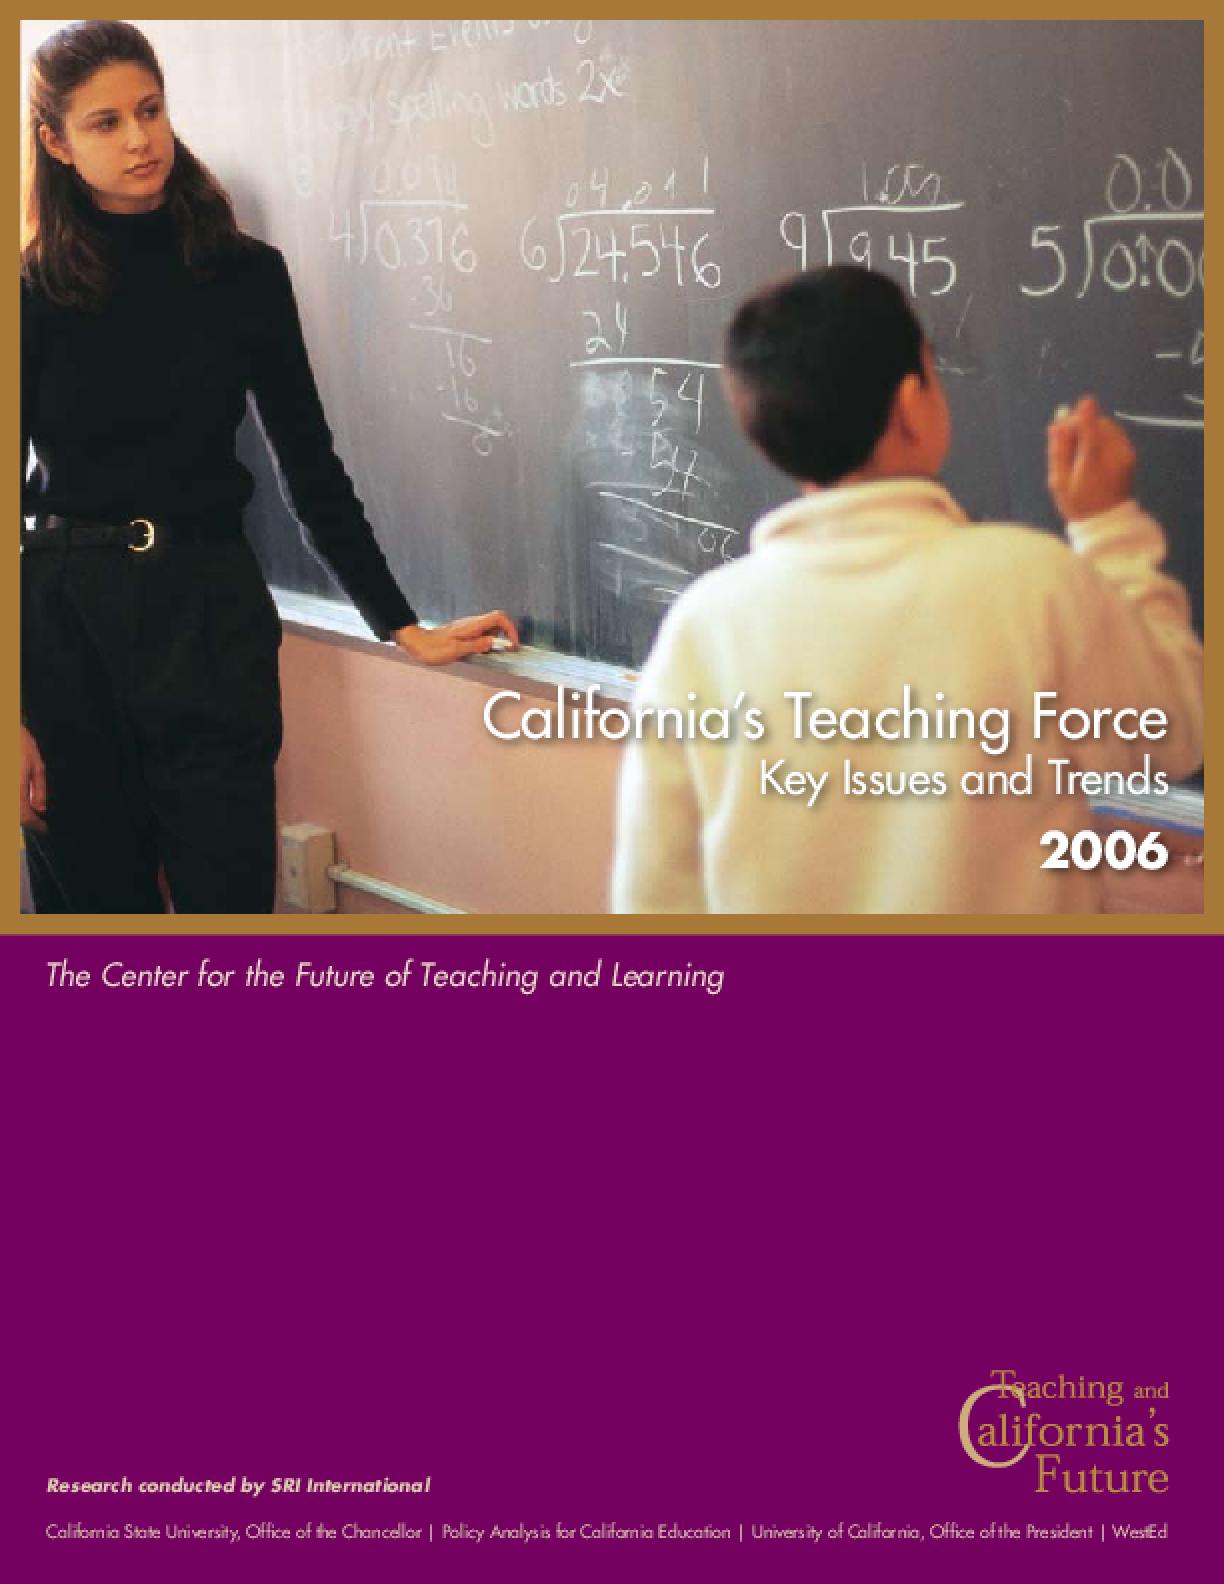 California's Teaching Force 2006: Key Issues and Trends (Summary)